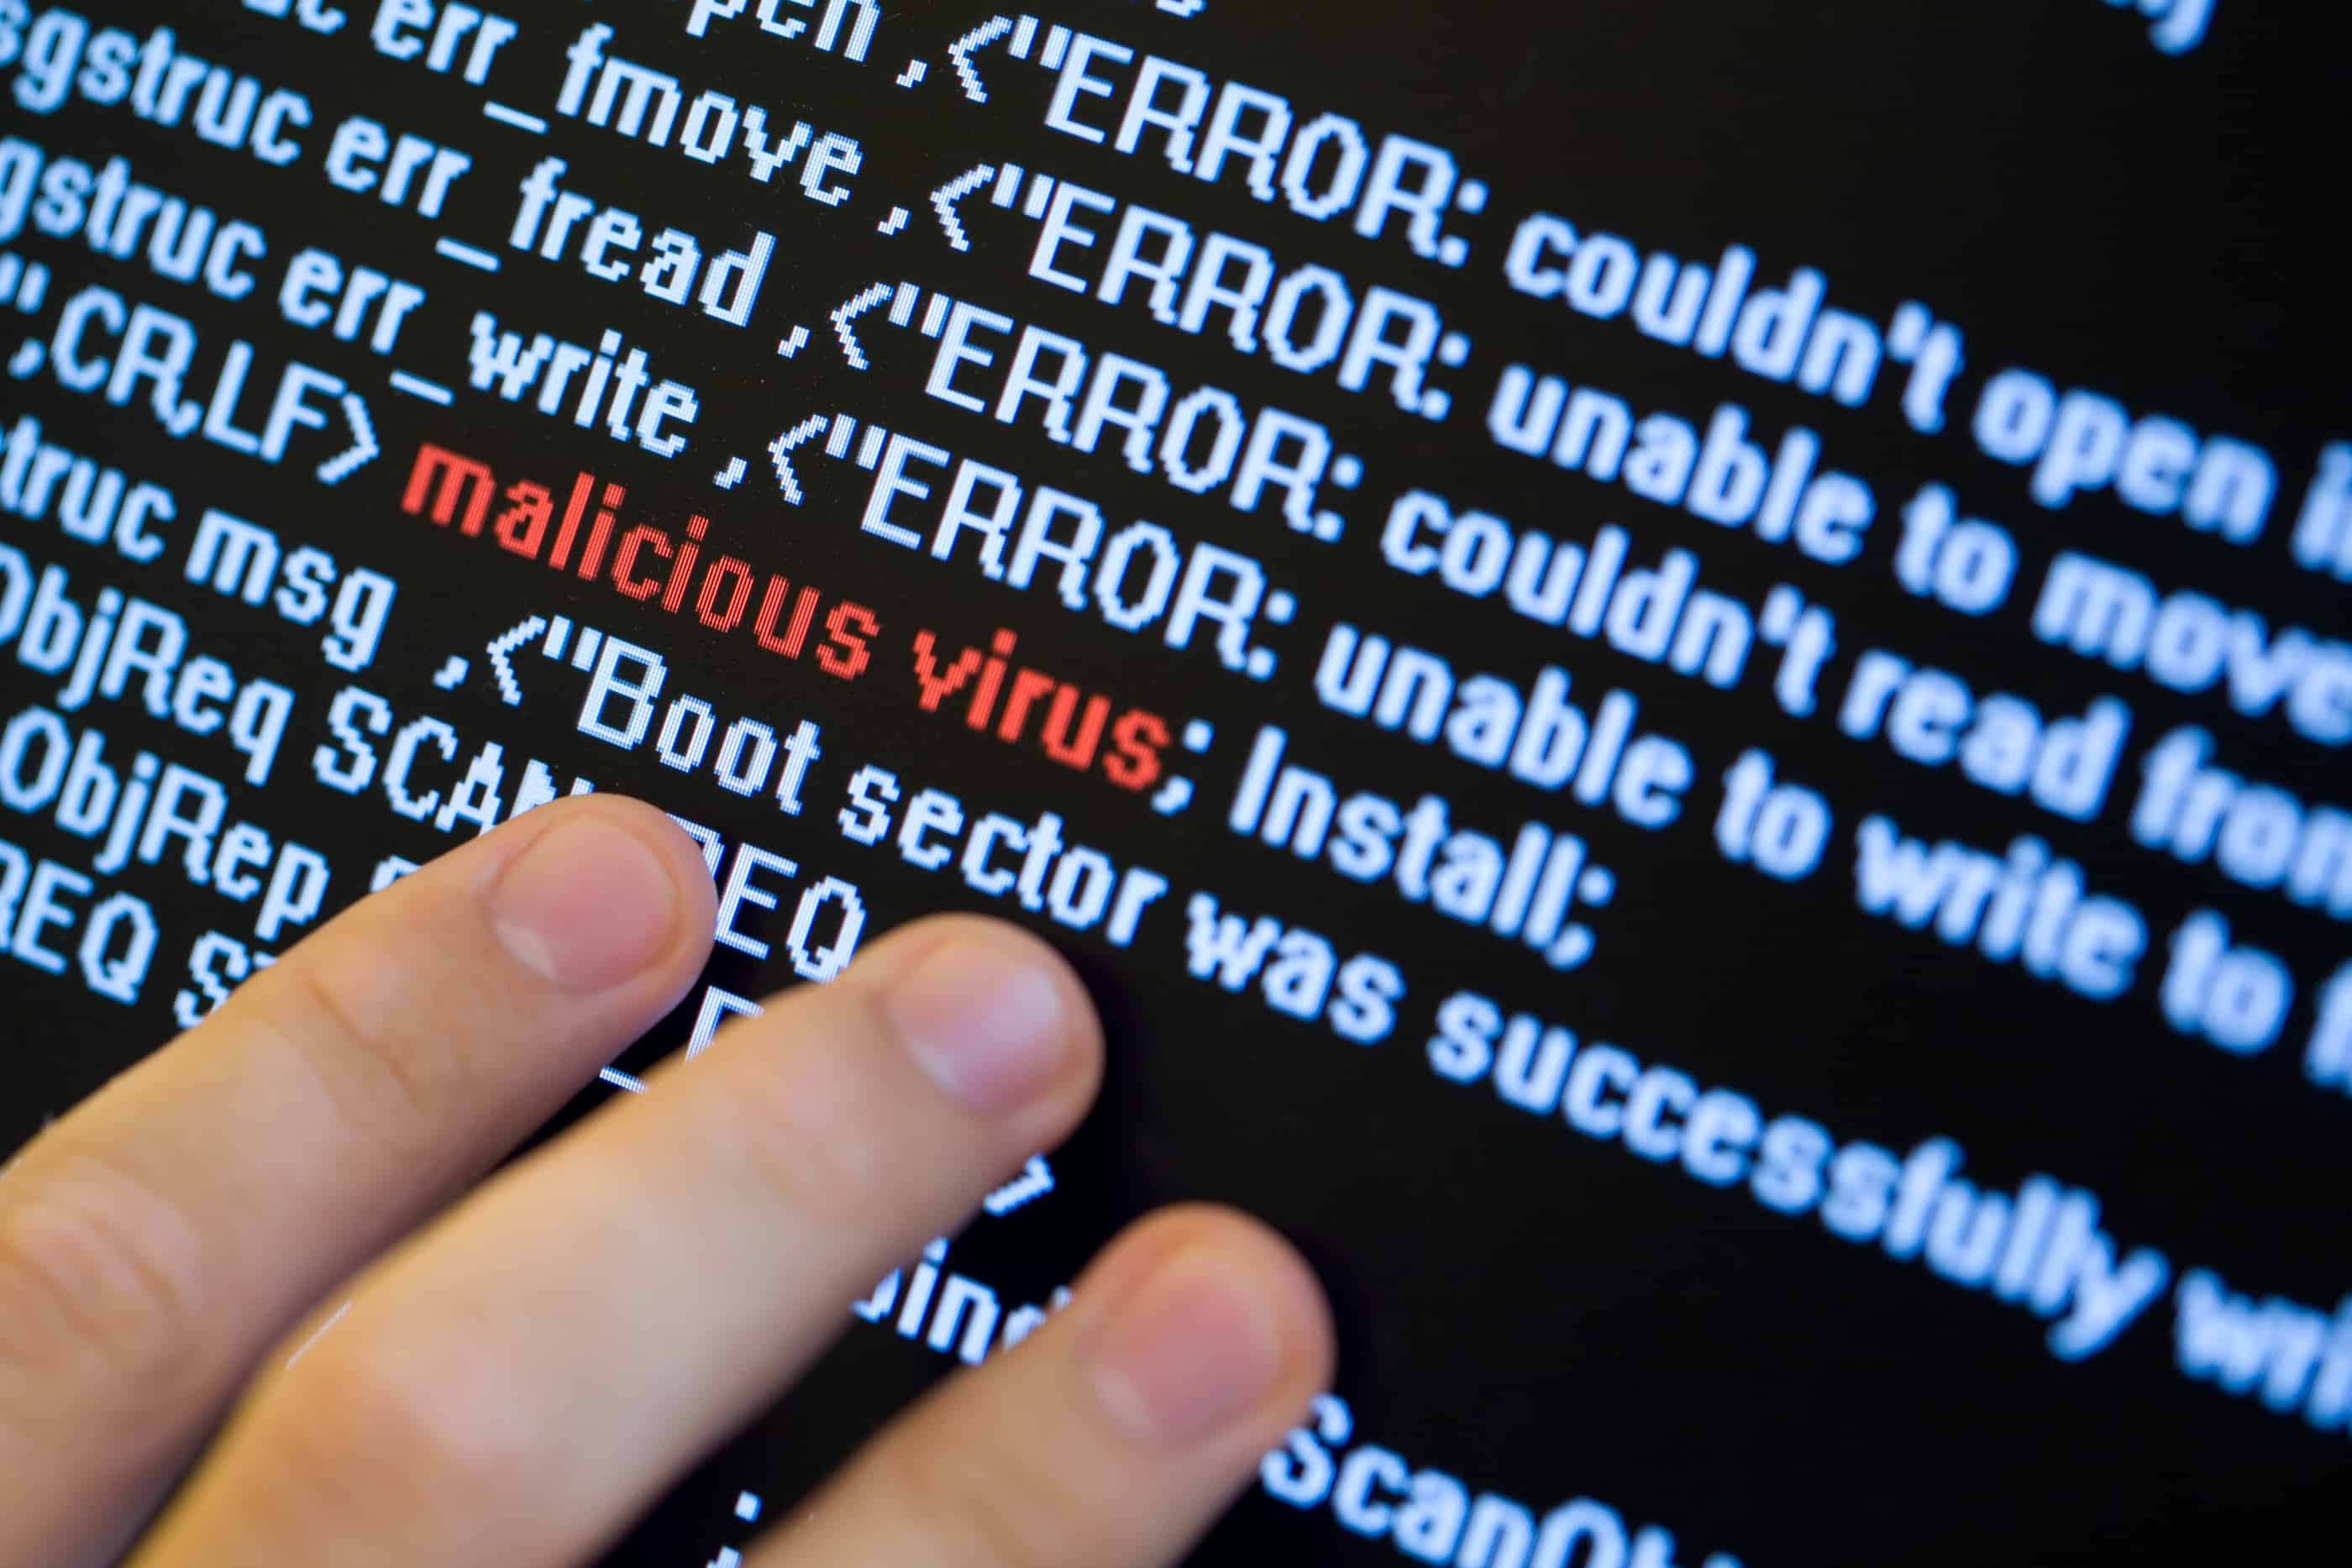 Types of Cyber Security Threats